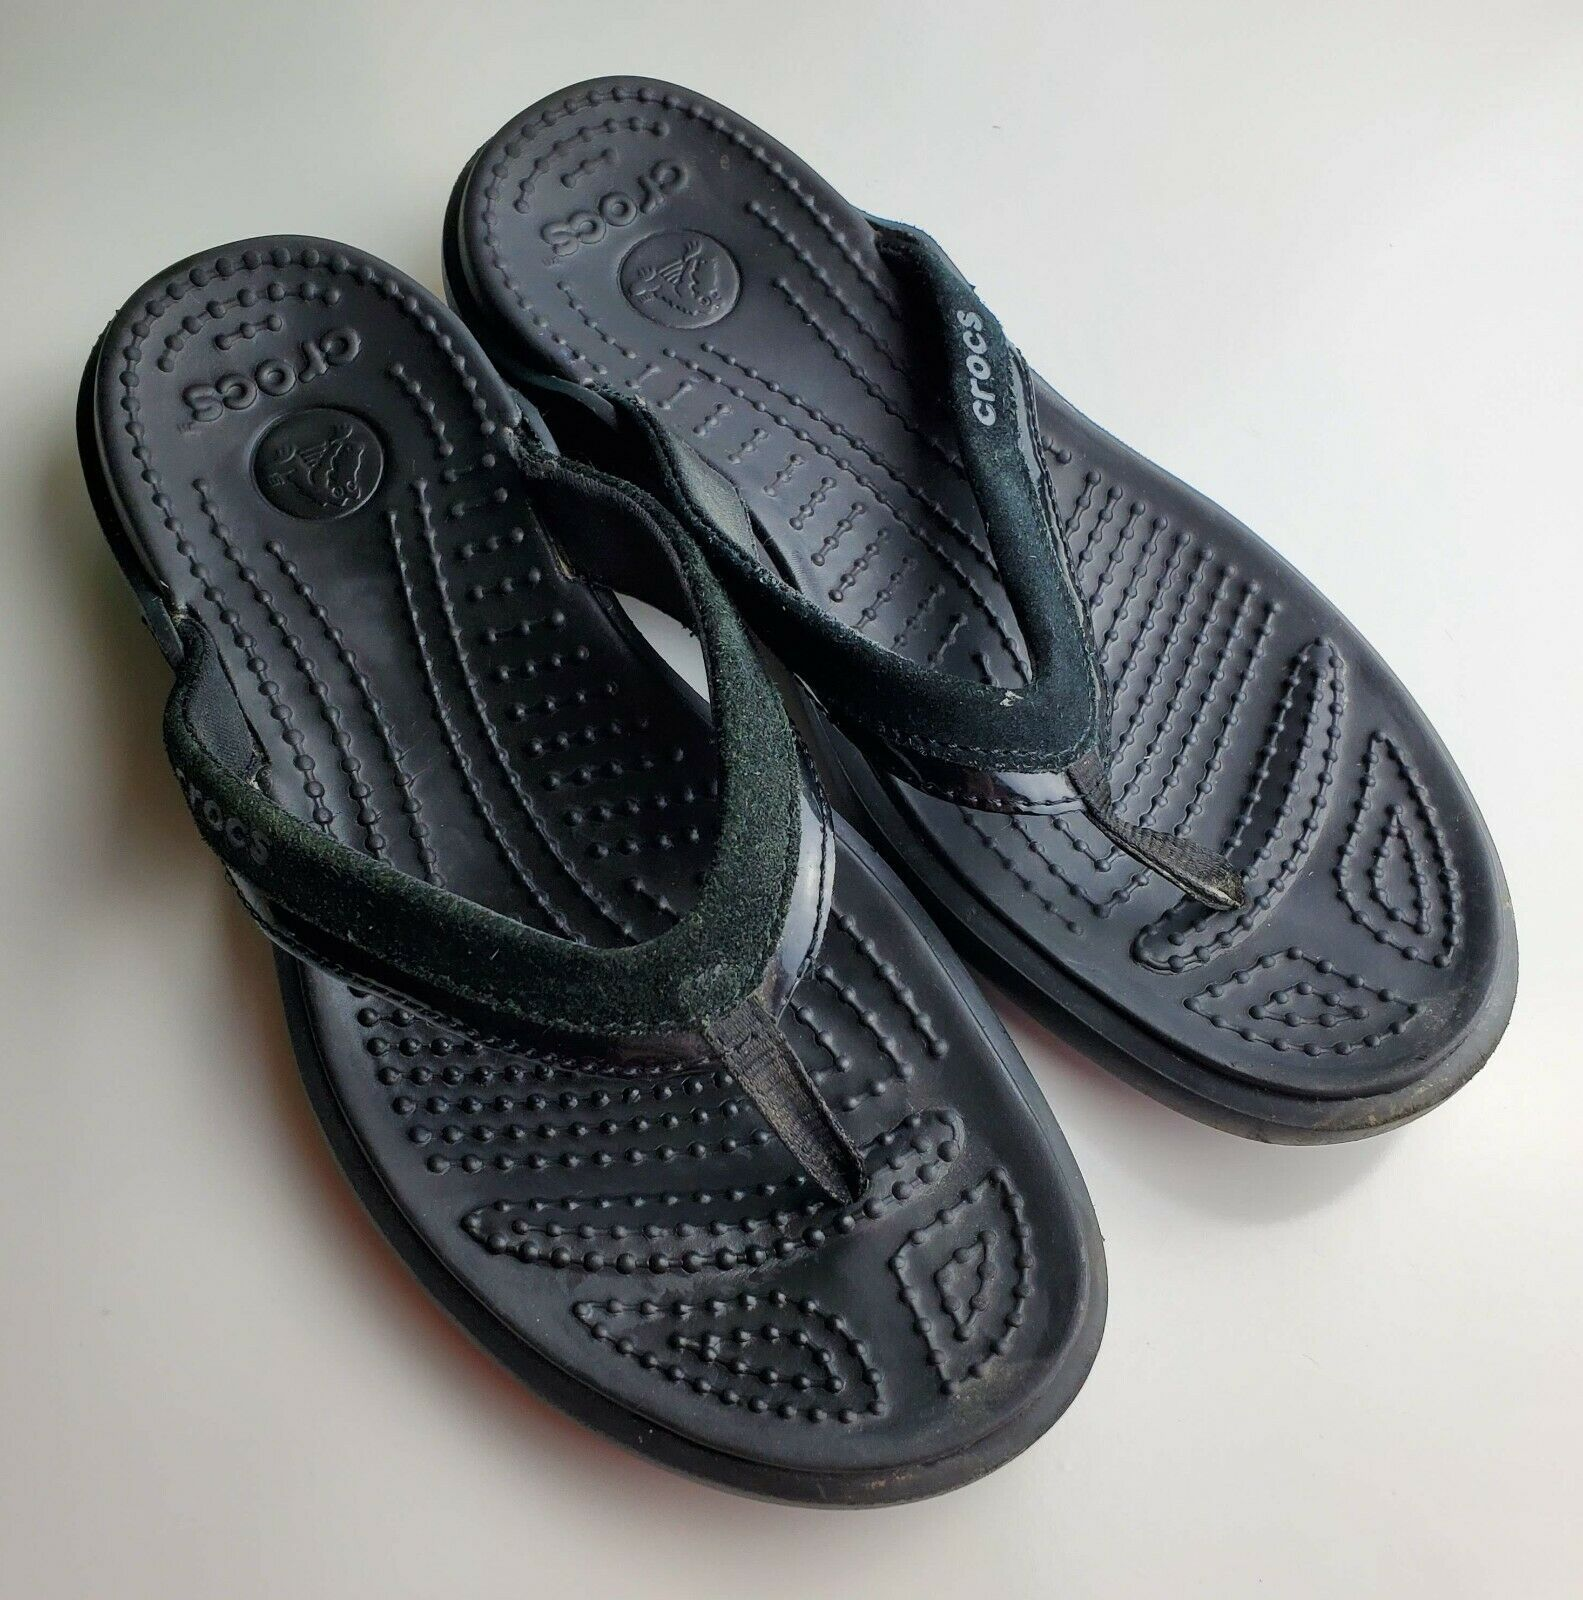 Primary image for Crocs  Black Thong Sandals - Women's Size 8